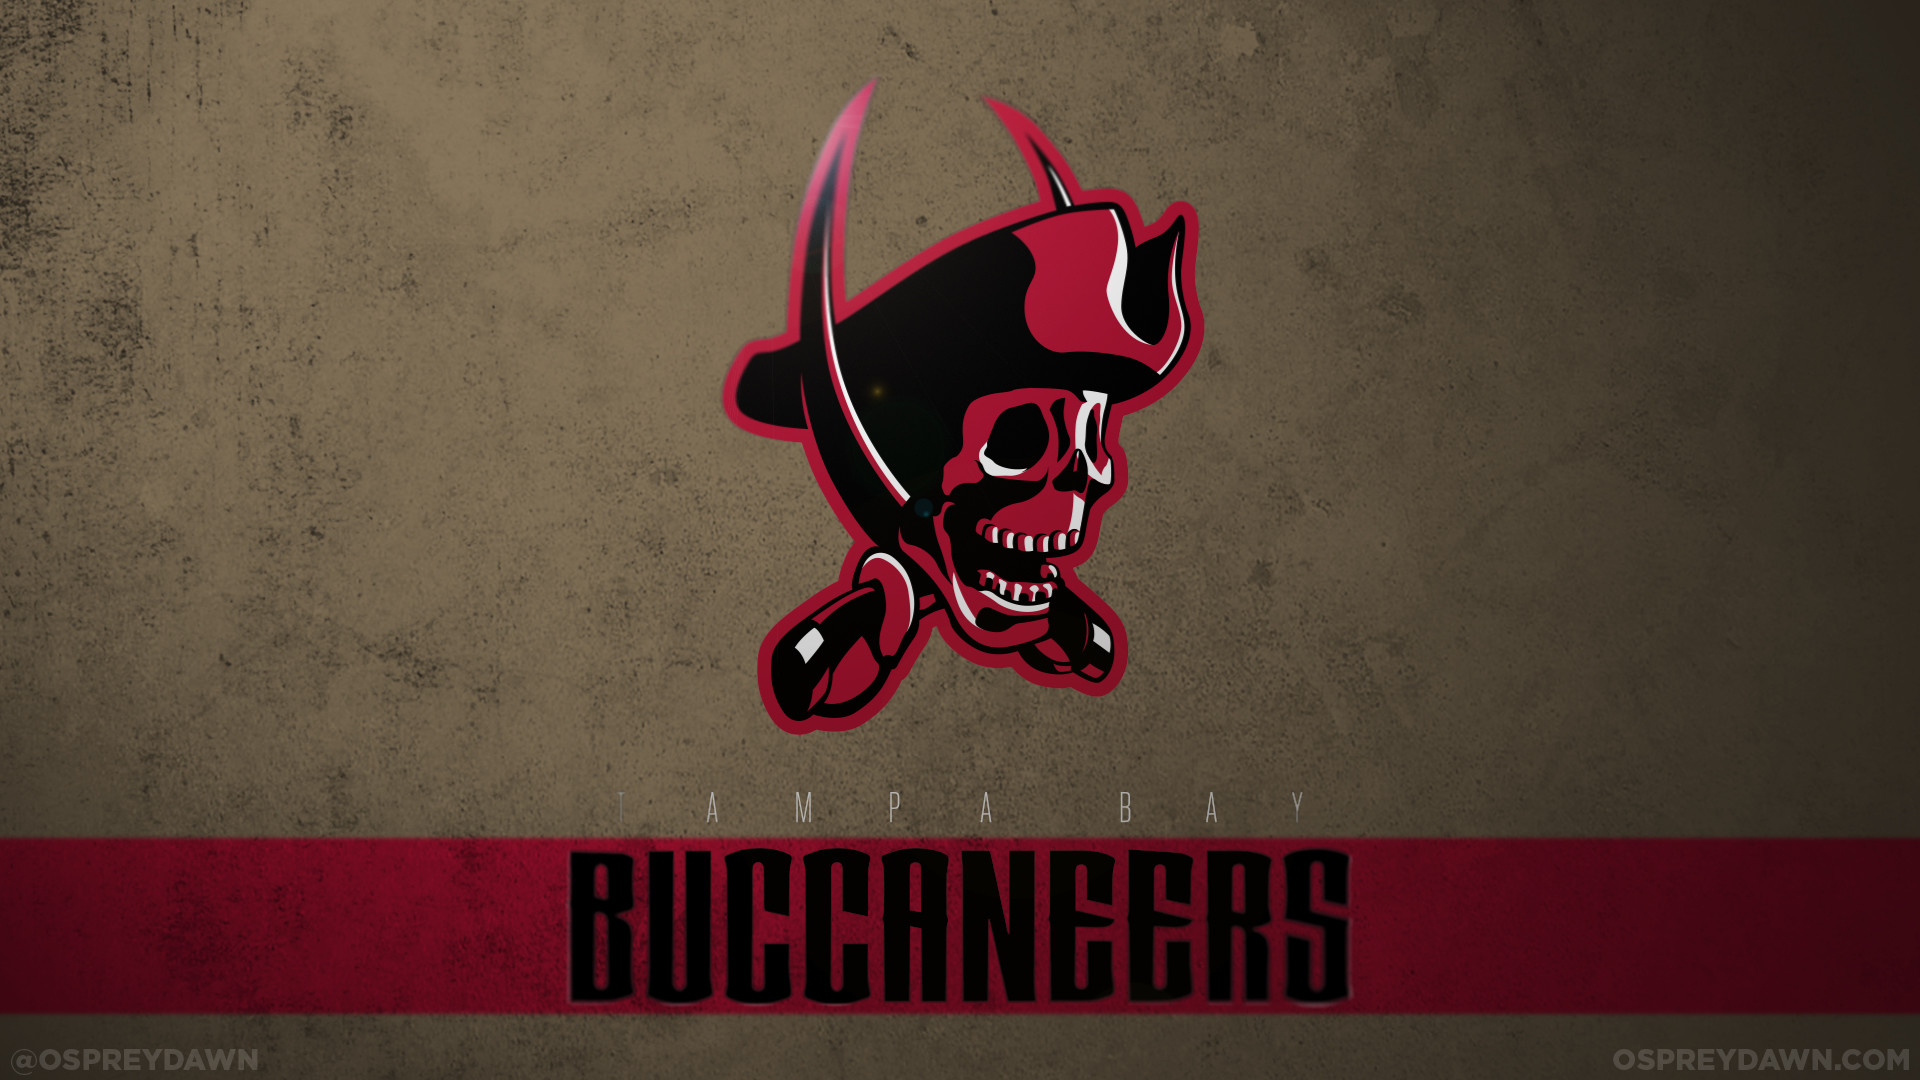 1920x1080 Tampa Bay Buccaneers Wallpapers PC iPhone Android